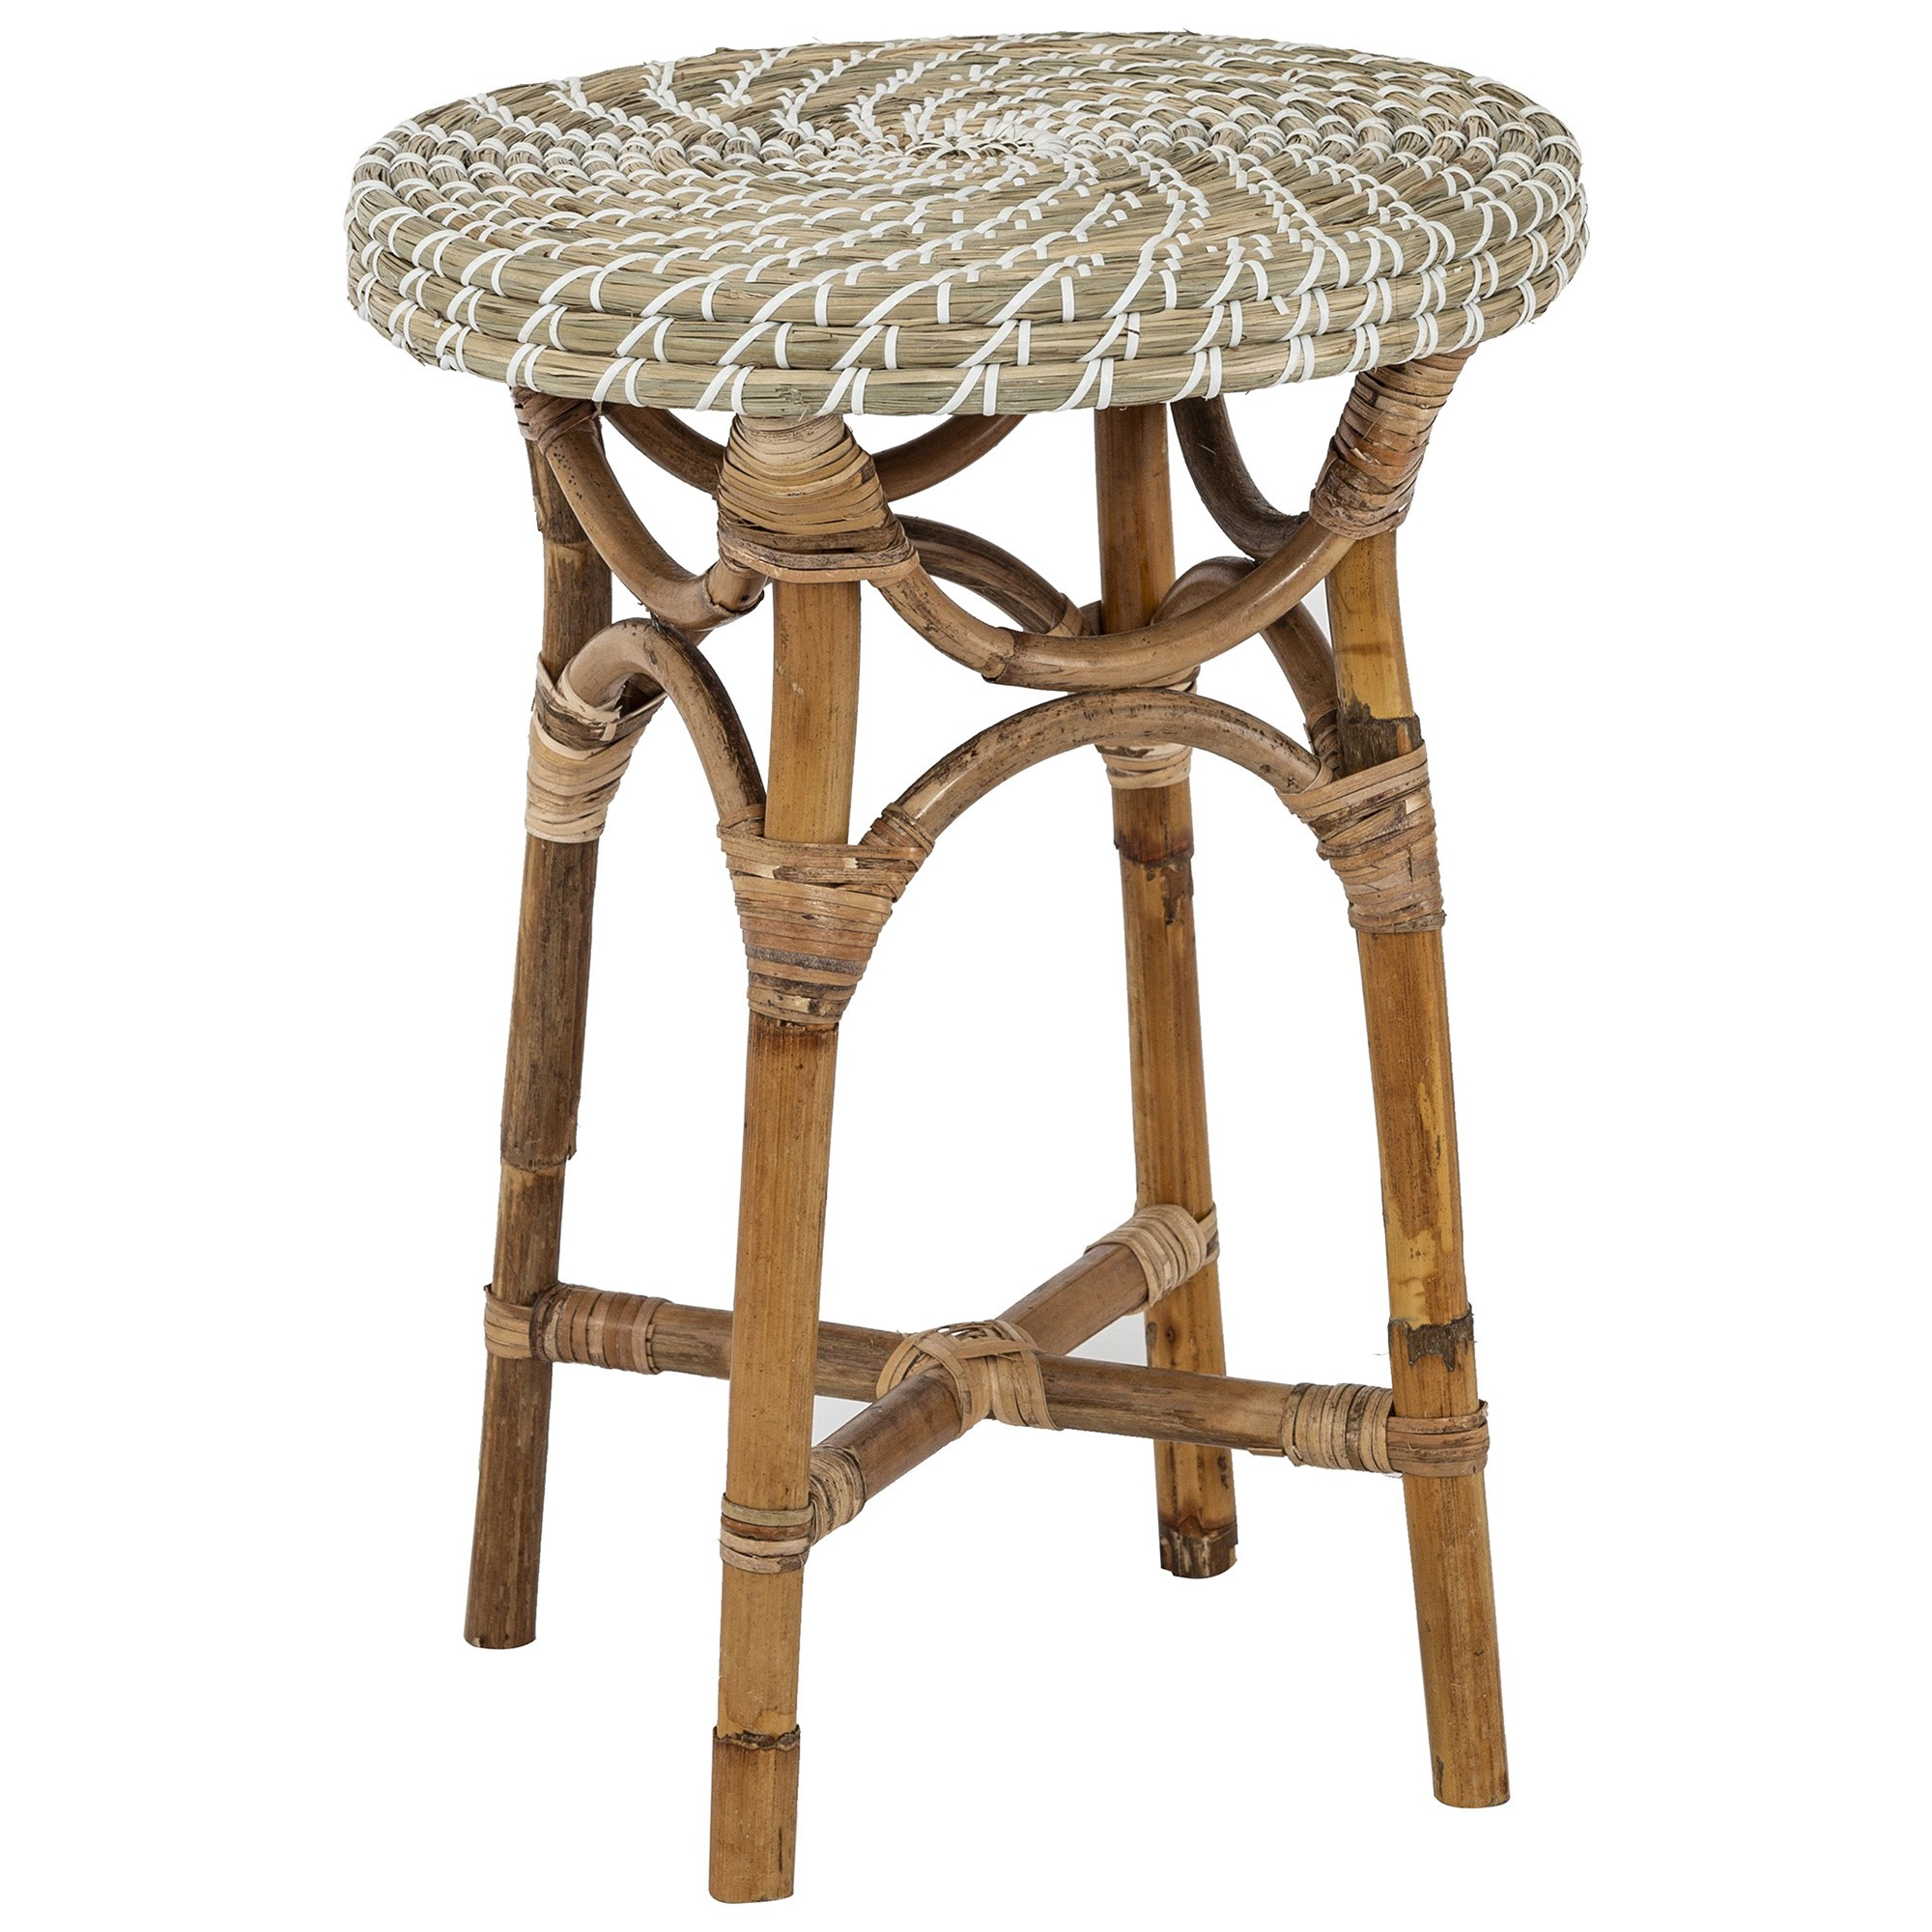 Kaysa Seagrass & Rattan Side Table